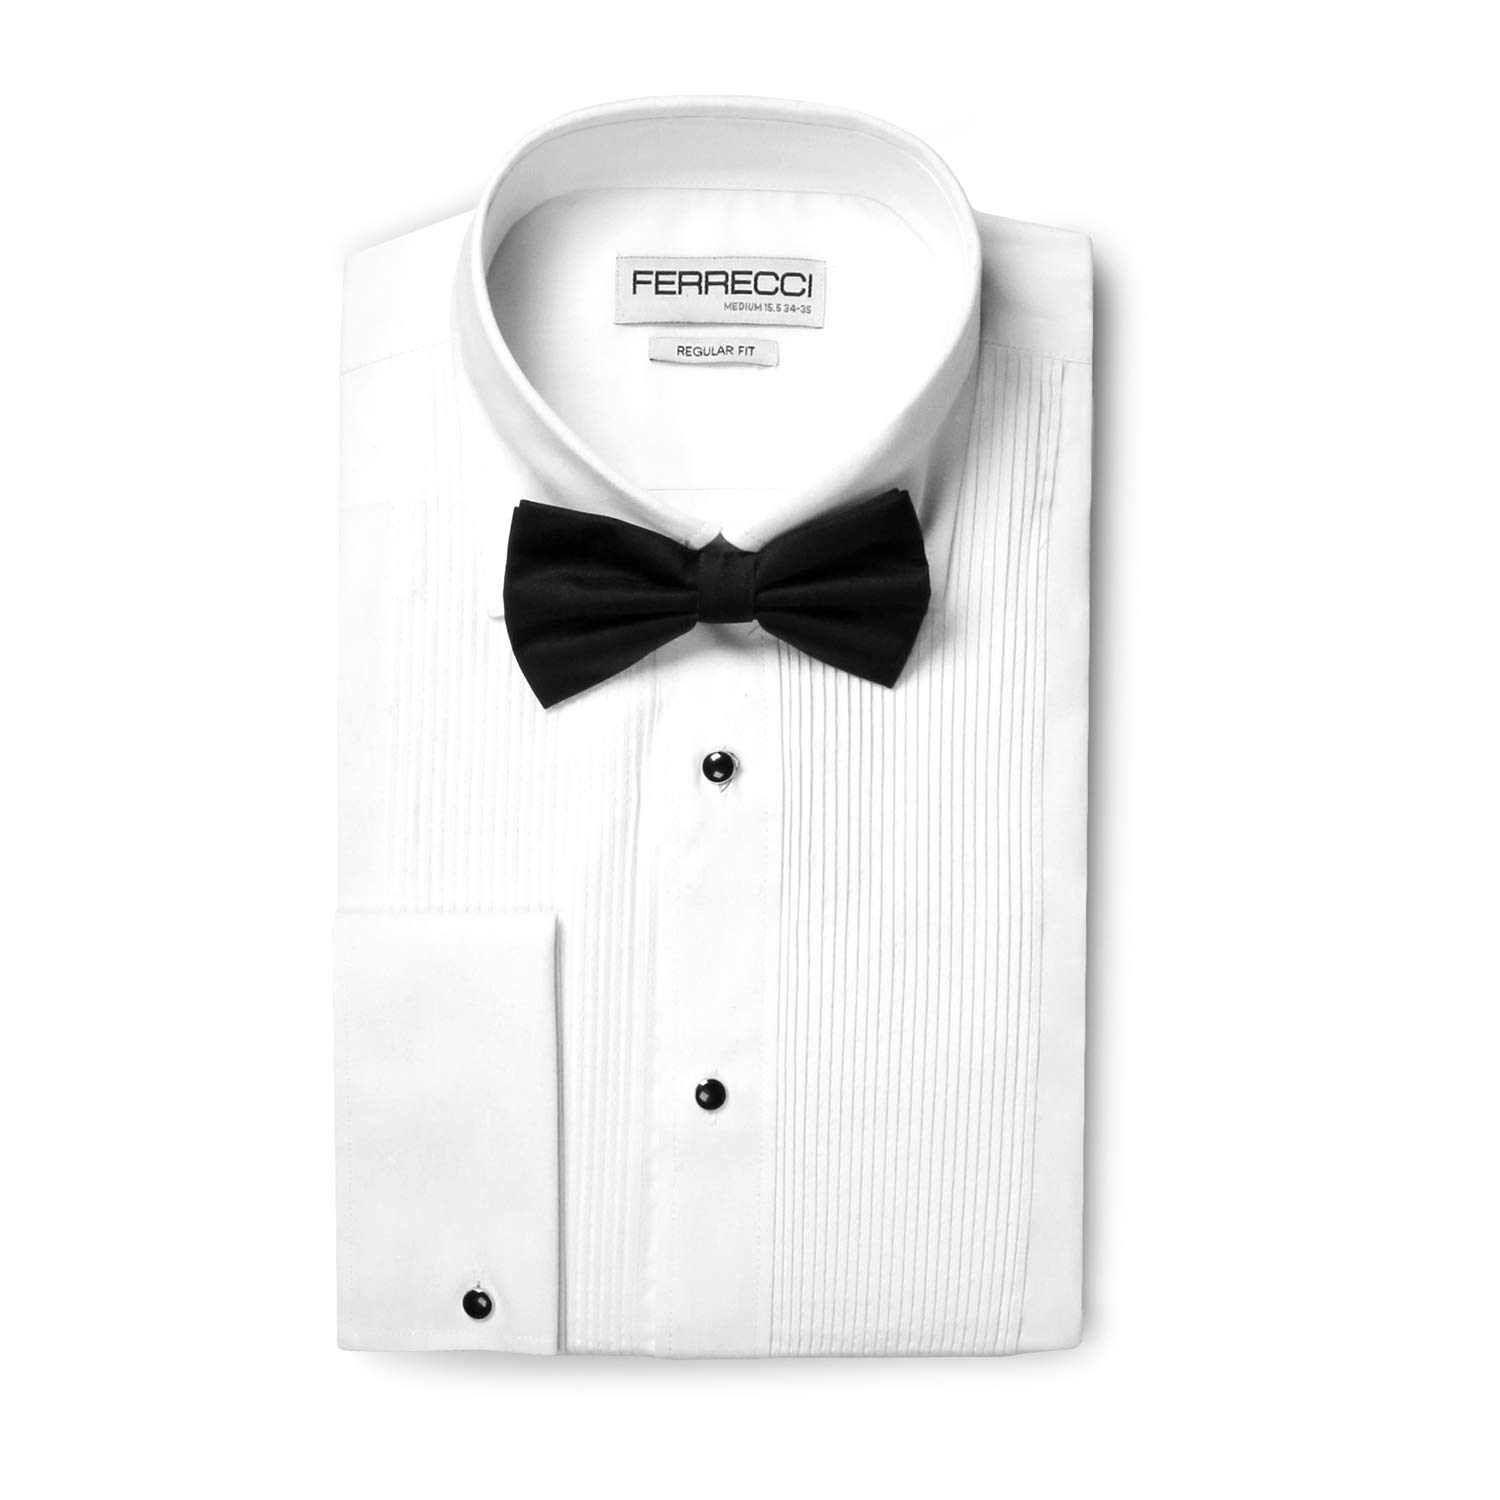 Ferrecci Men's Paris White Regular Fit Lay Down Collar Pleated Tuxedo Shirt with Bowtie (S14.5 32) by Ferrecci